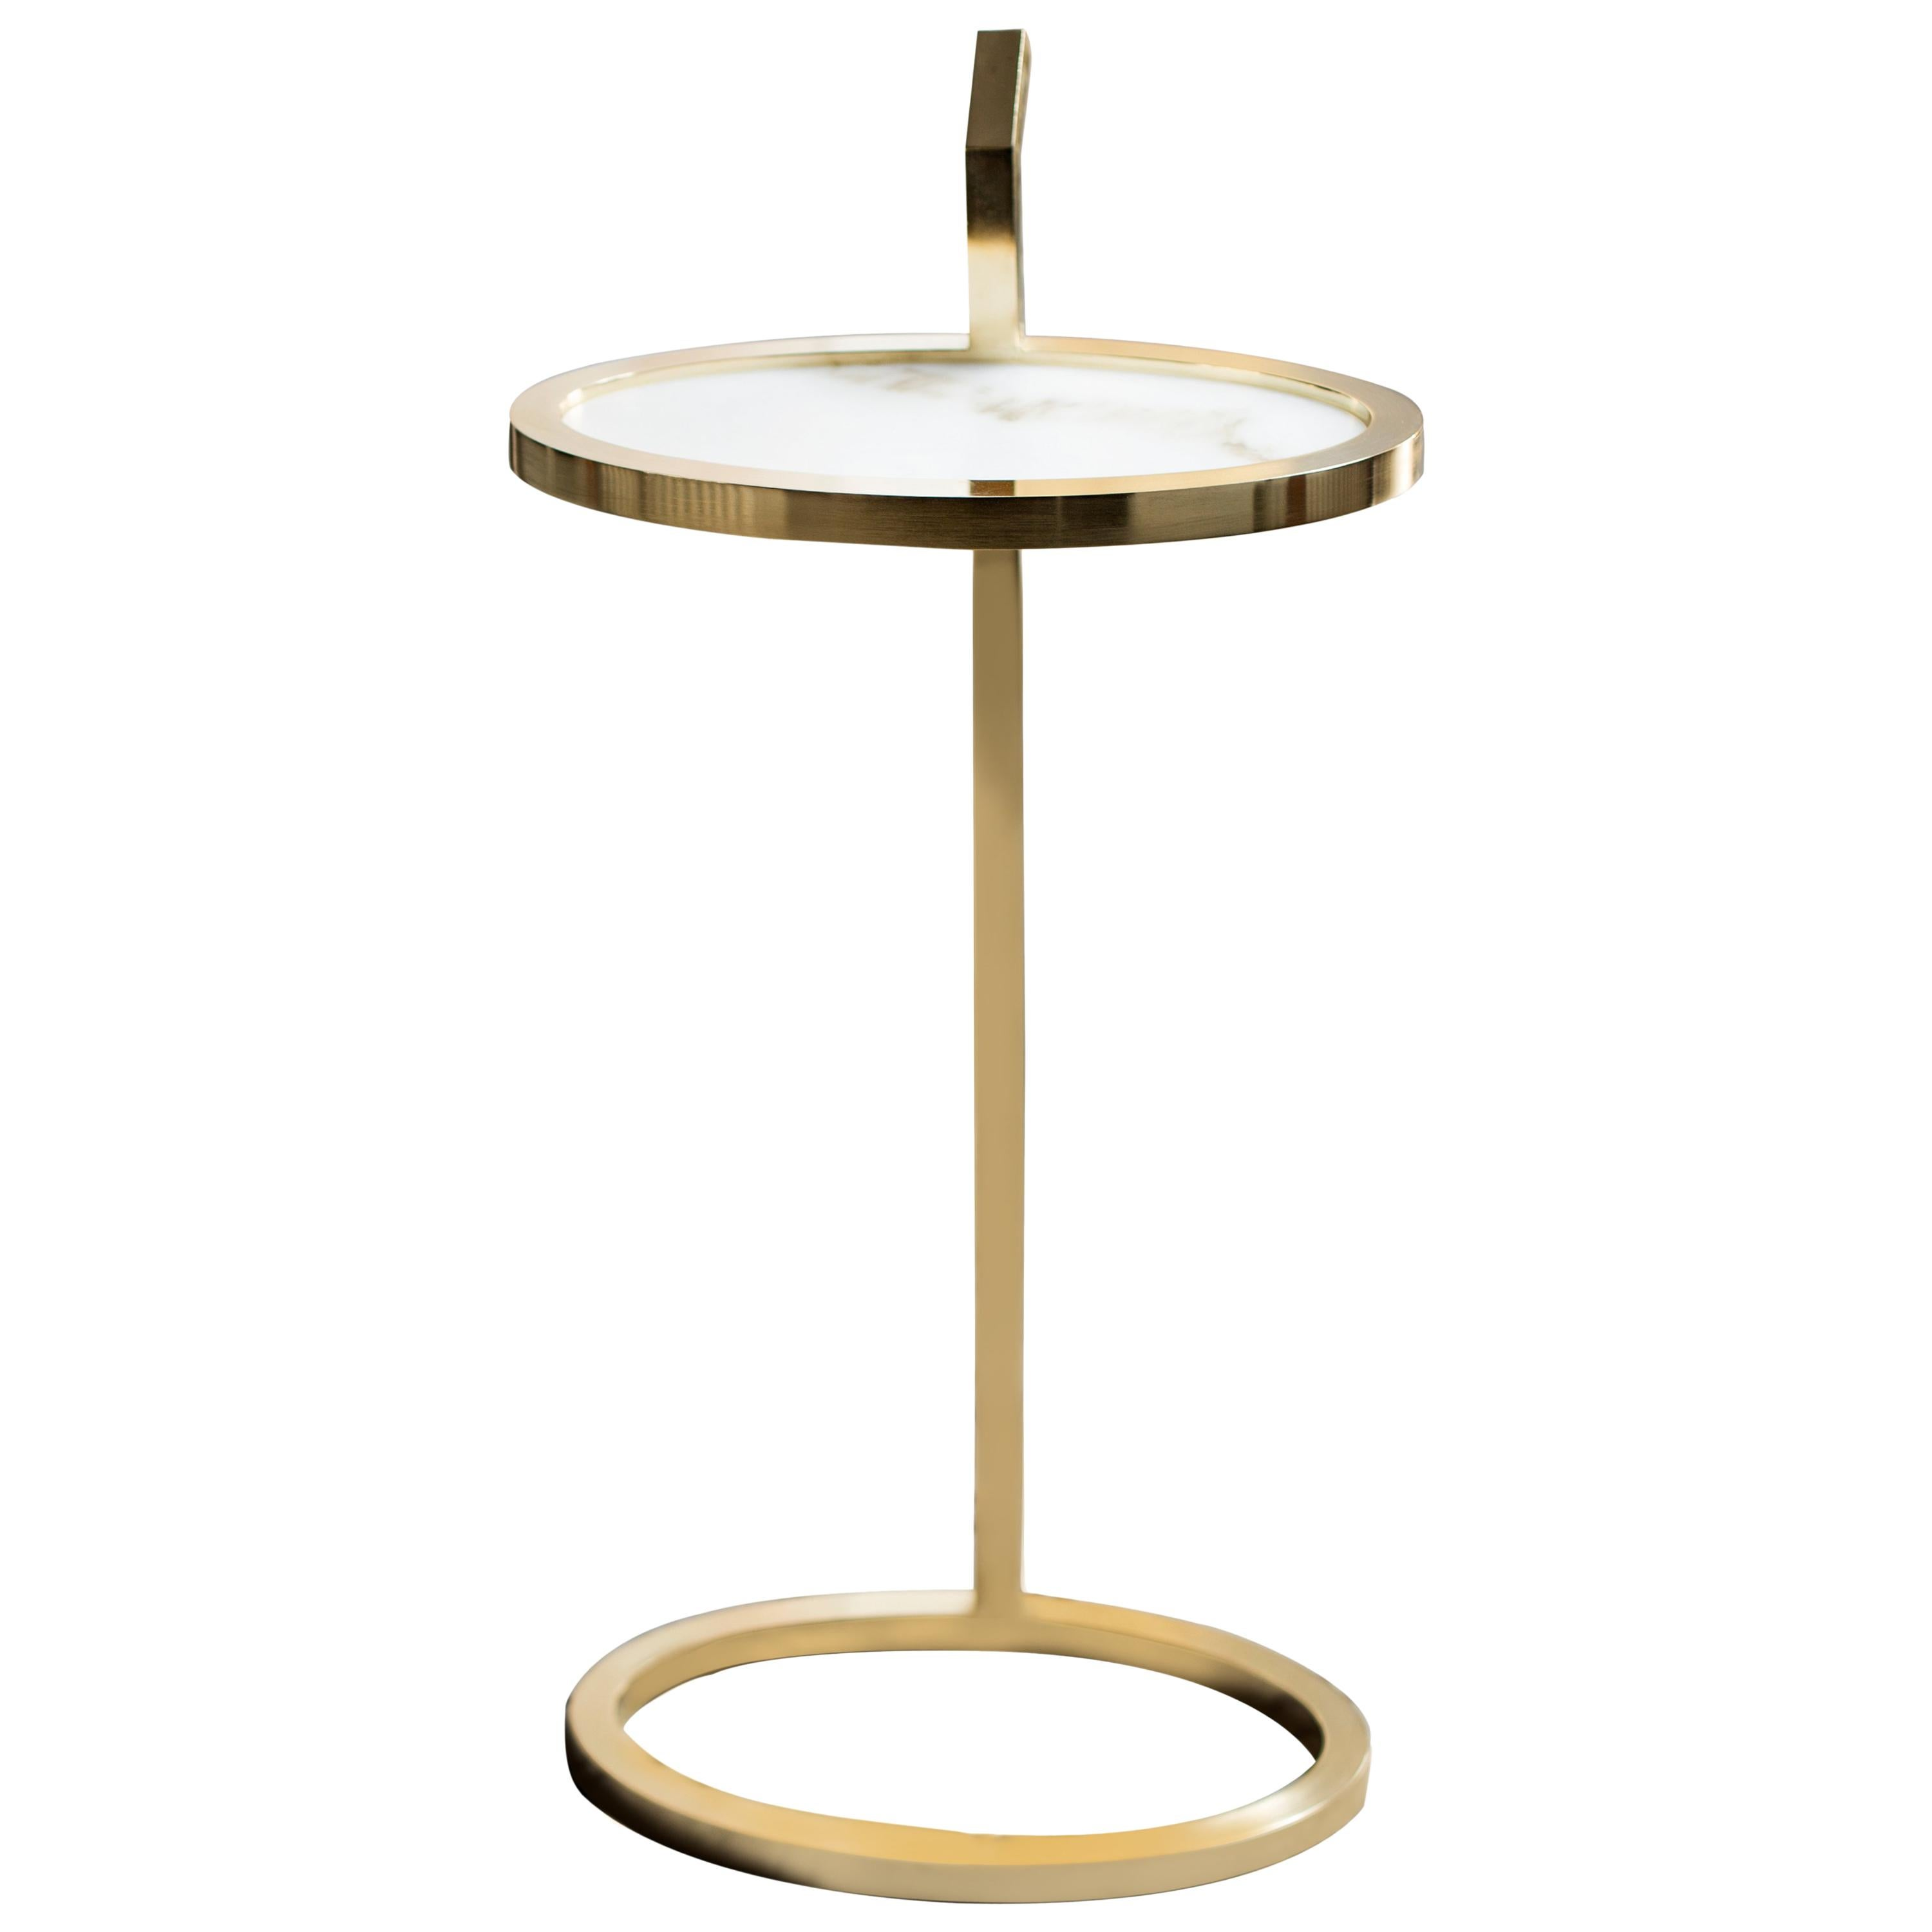 Manhattan Martini Table in Polished Brass Tinted Finish and Marblo Surface